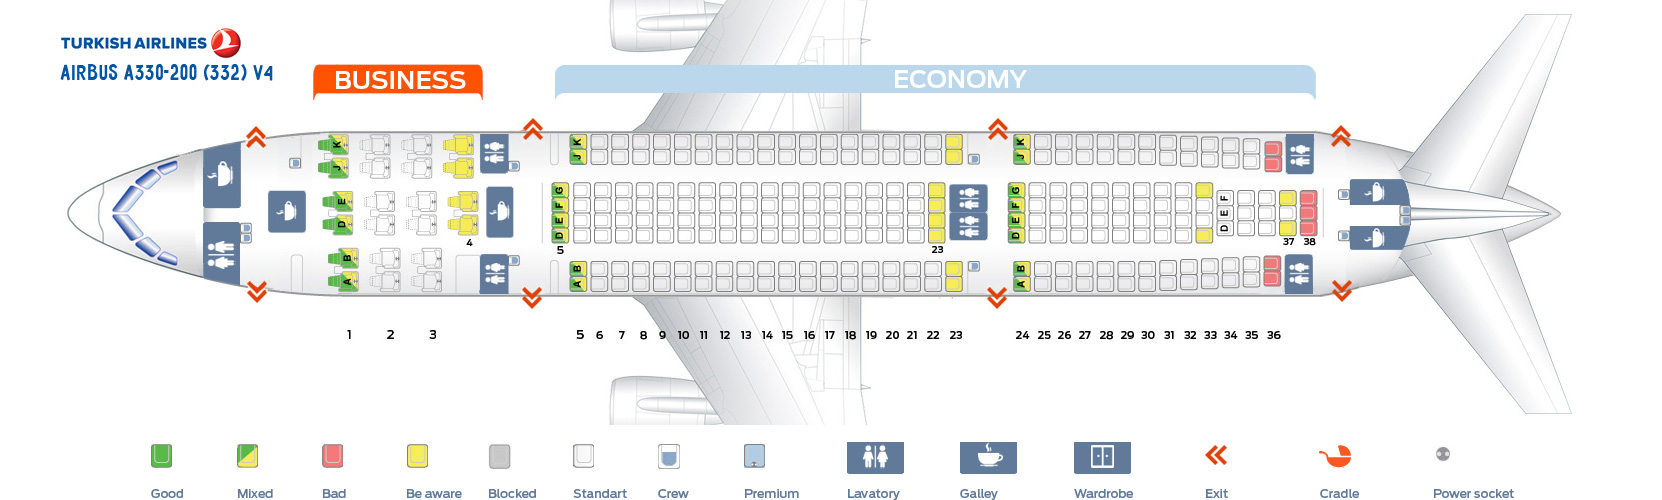 Seat Map Airbus A330-200 V4 Turkish Airlines